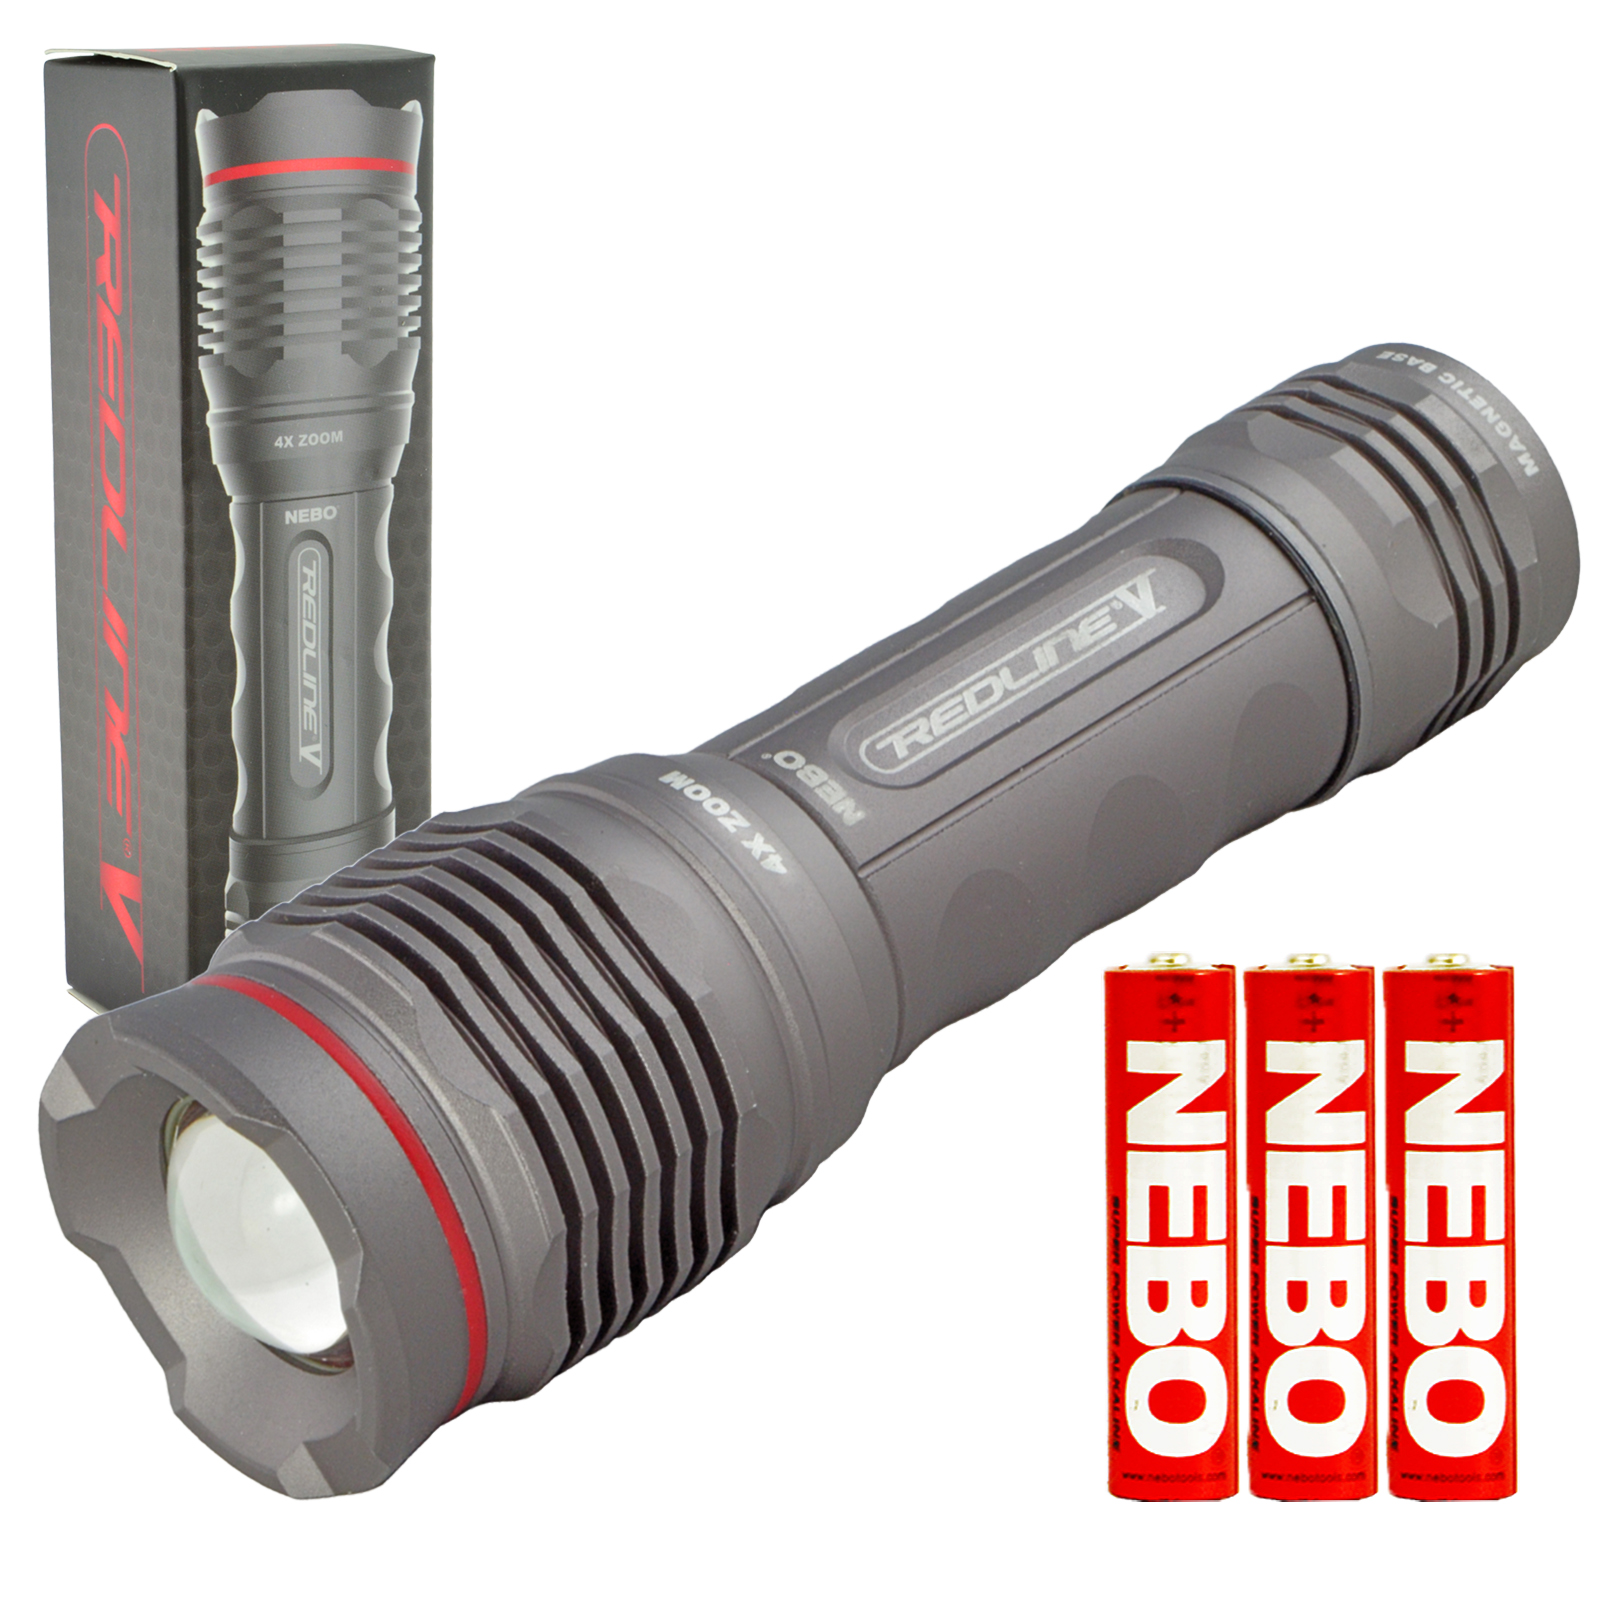 Nebo 6639 Redline V LED Flashlight Magnetic Base 4x Adjustable Zoom Waterproof